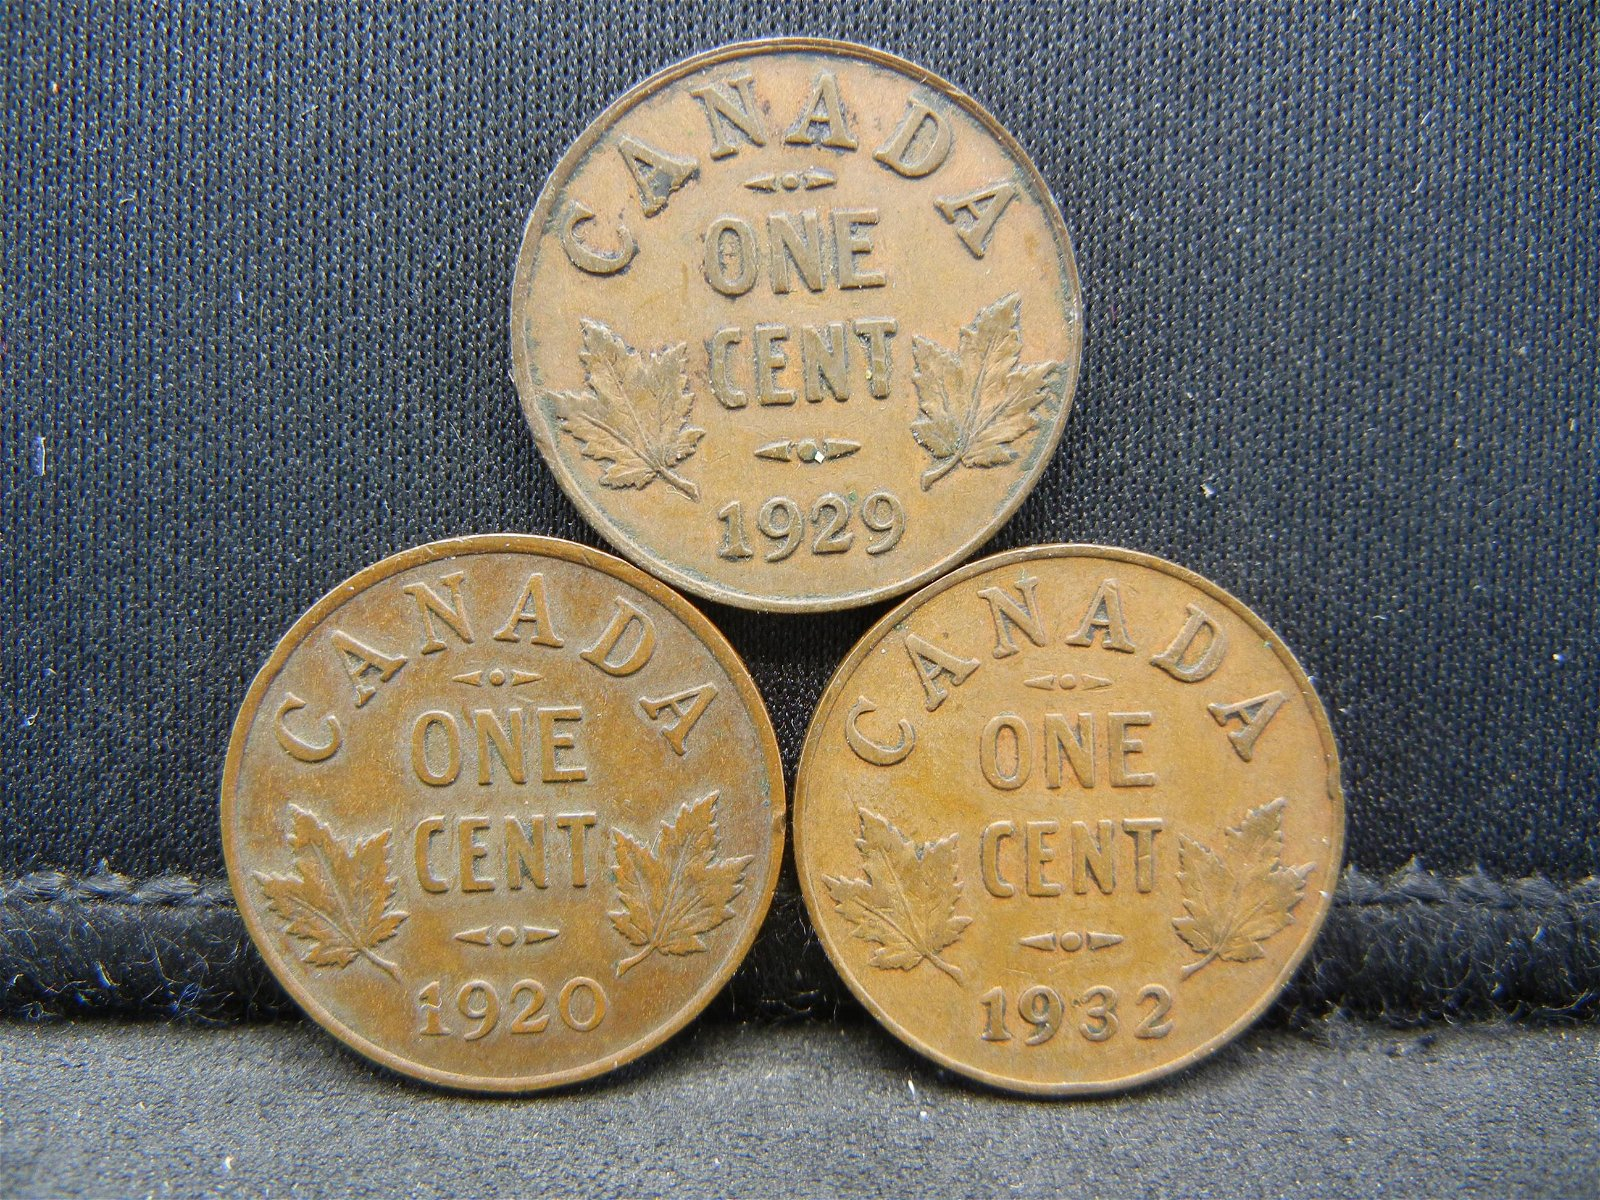 3 Canada George V Cents Dated 1920 1929 1932.